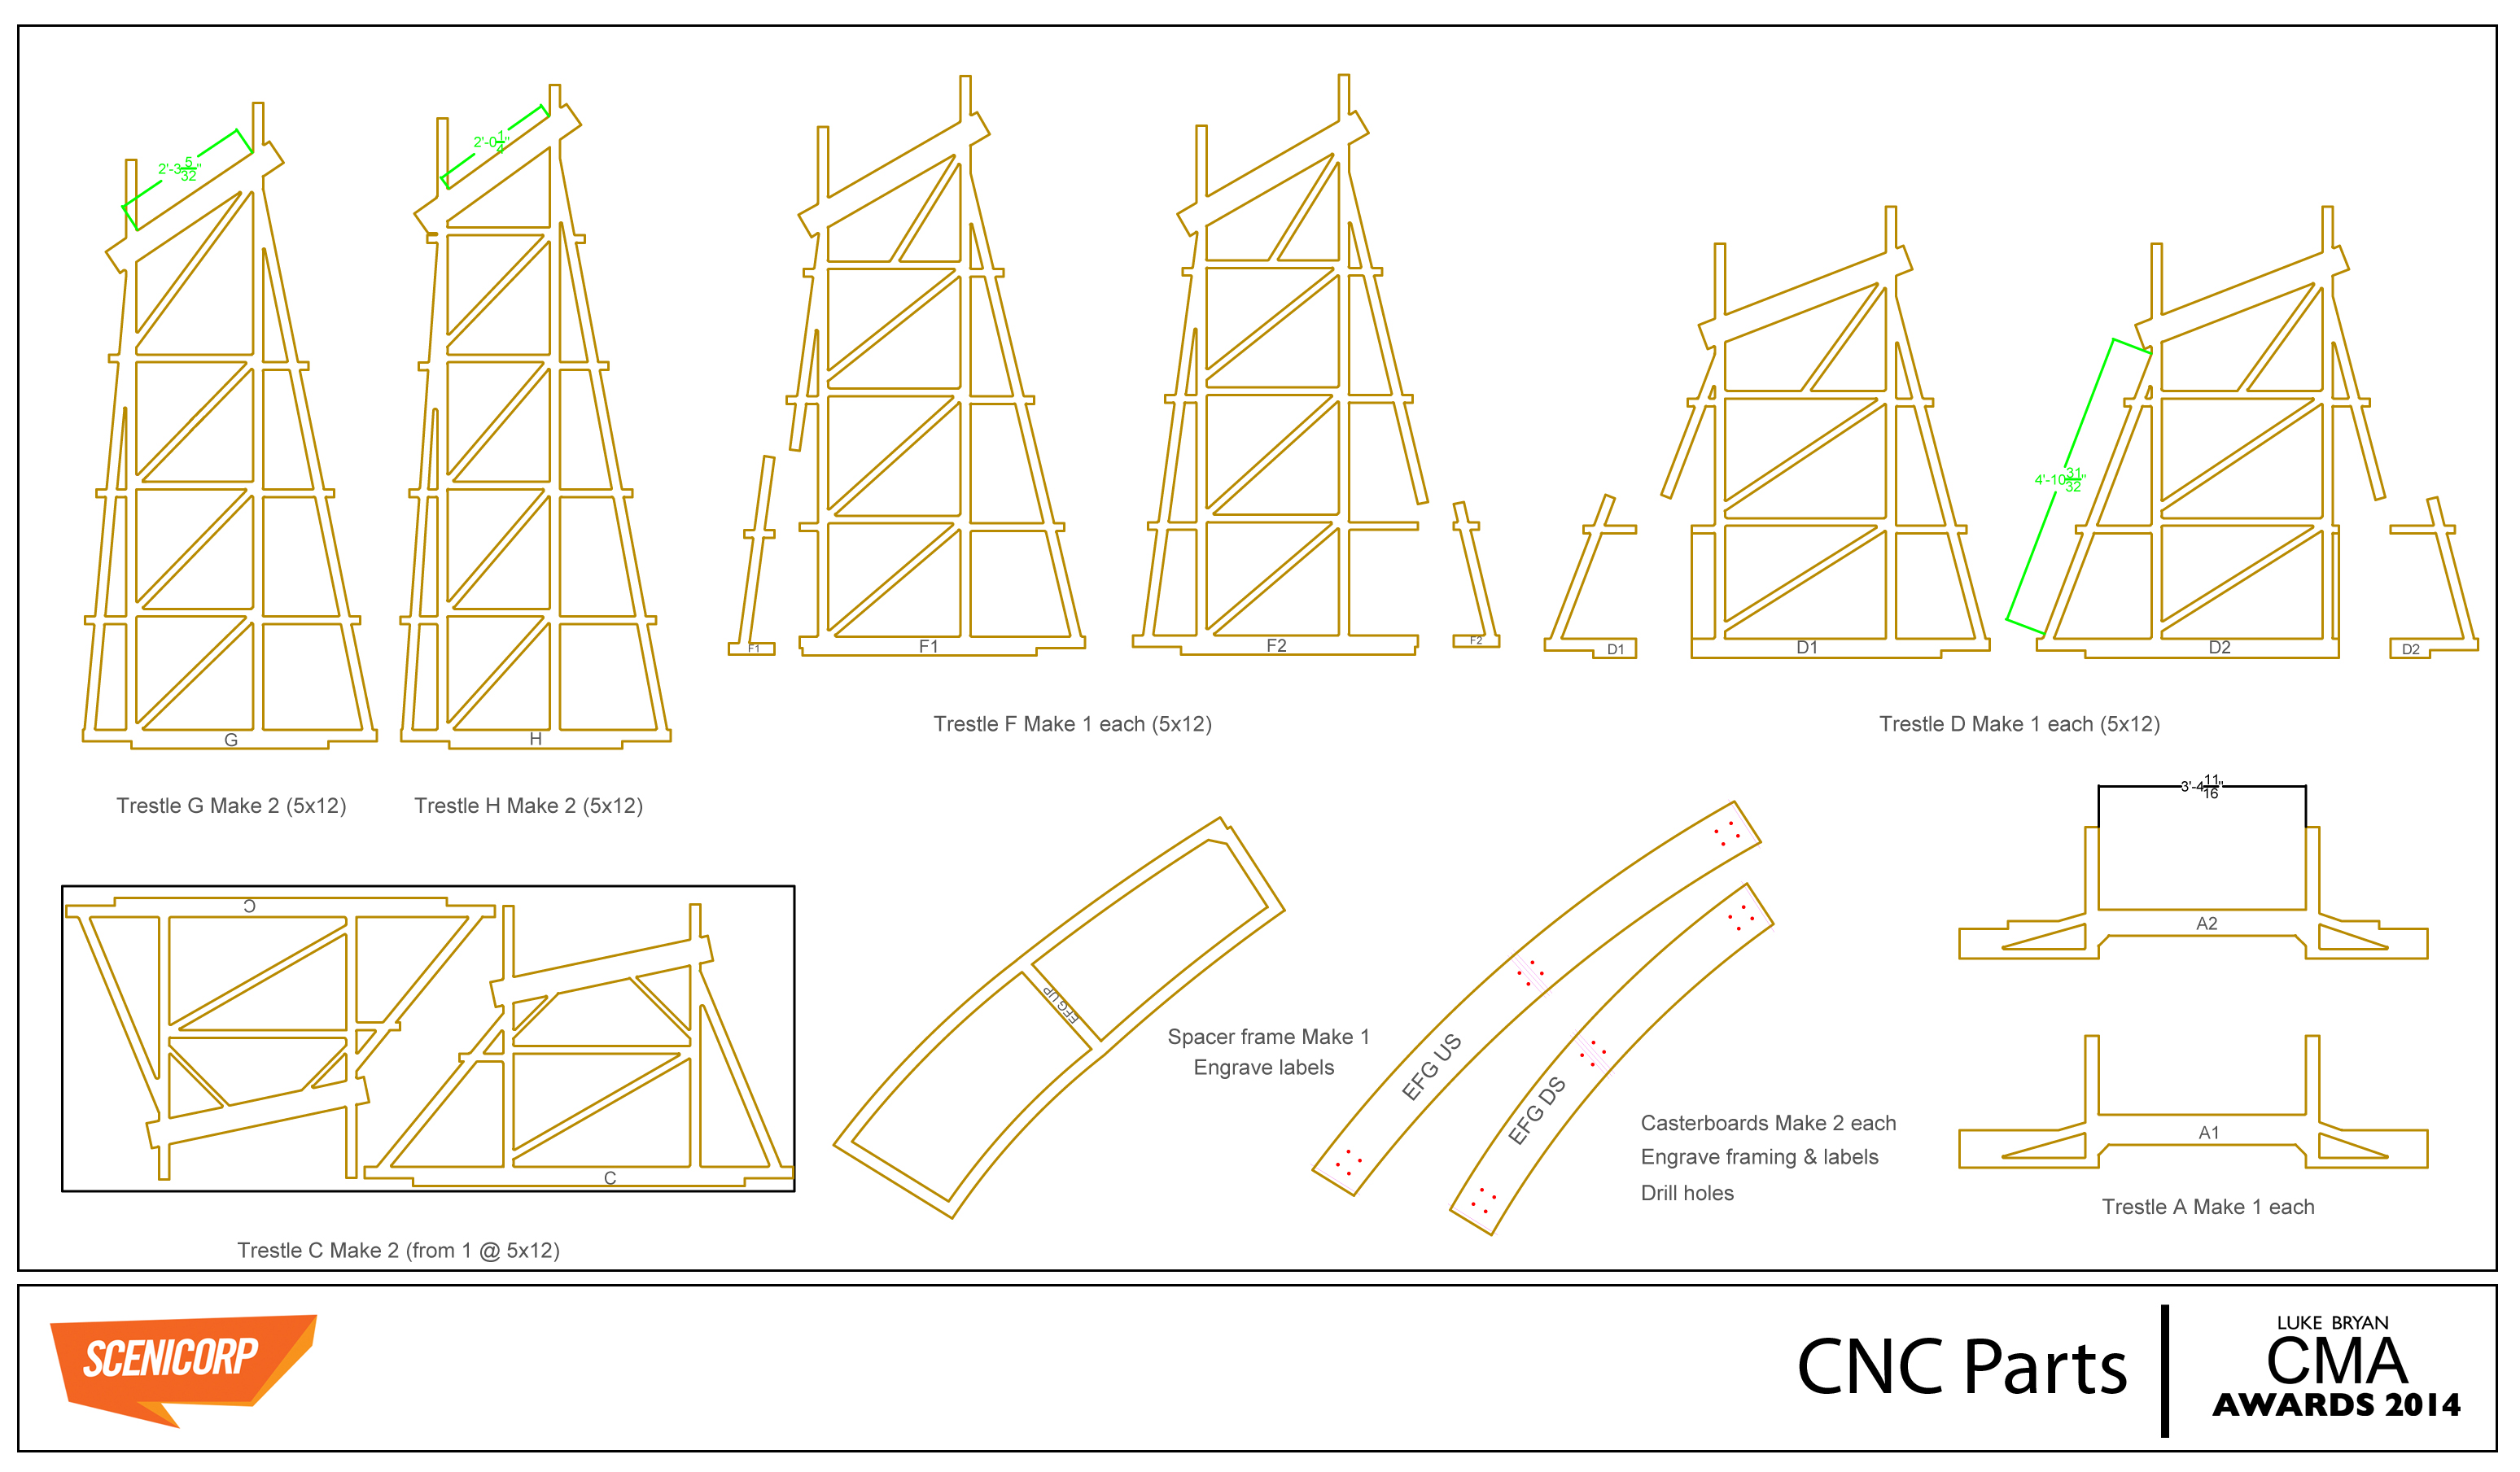 Behind The Scenes With Scenicorp Rollercoaster Diagram Once Parts Were Delivered To Wood Shop Carpenters Went Work Assembling And Filling In Details Of